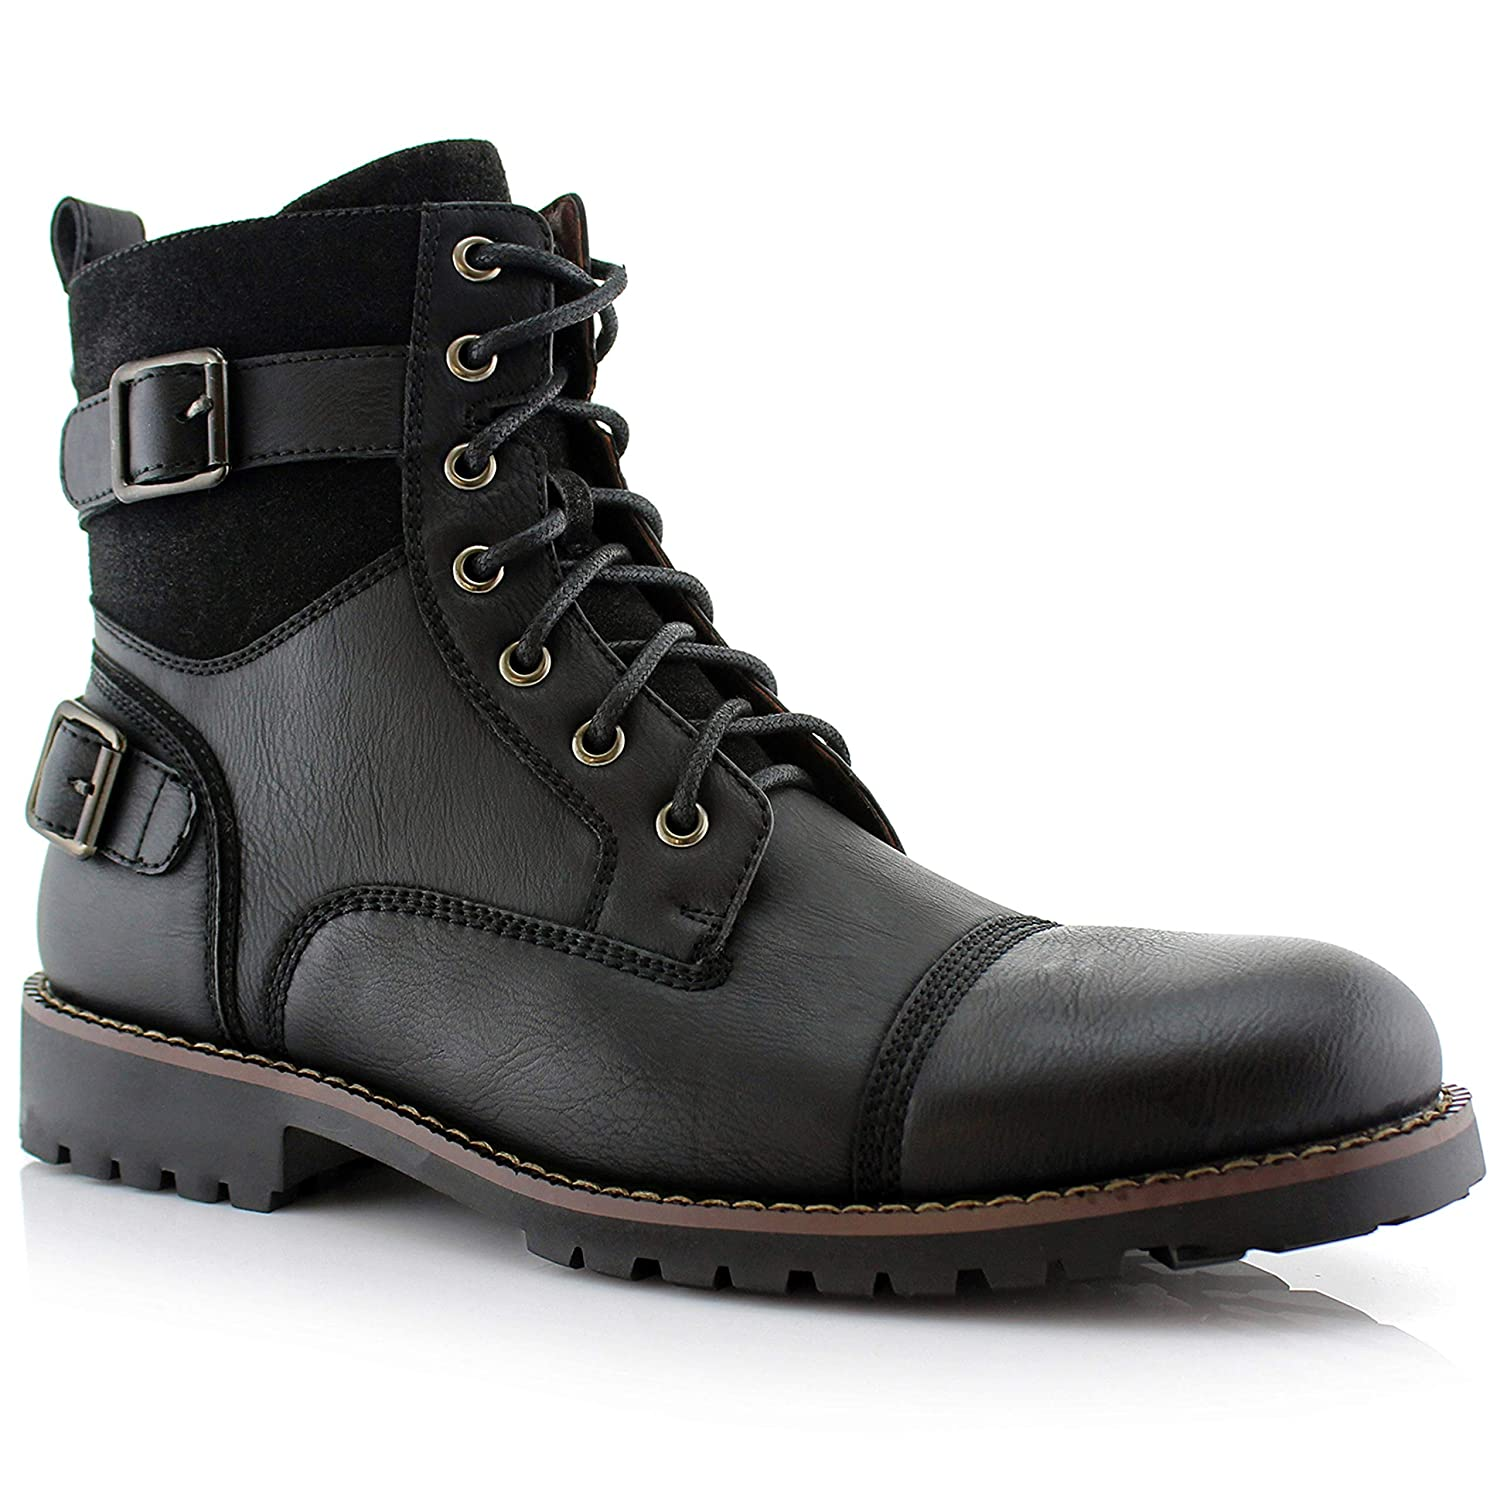 Steampunk Boots and Shoes for Men Polar Fox Mens Patrick Combat Boot $49.99 AT vintagedancer.com